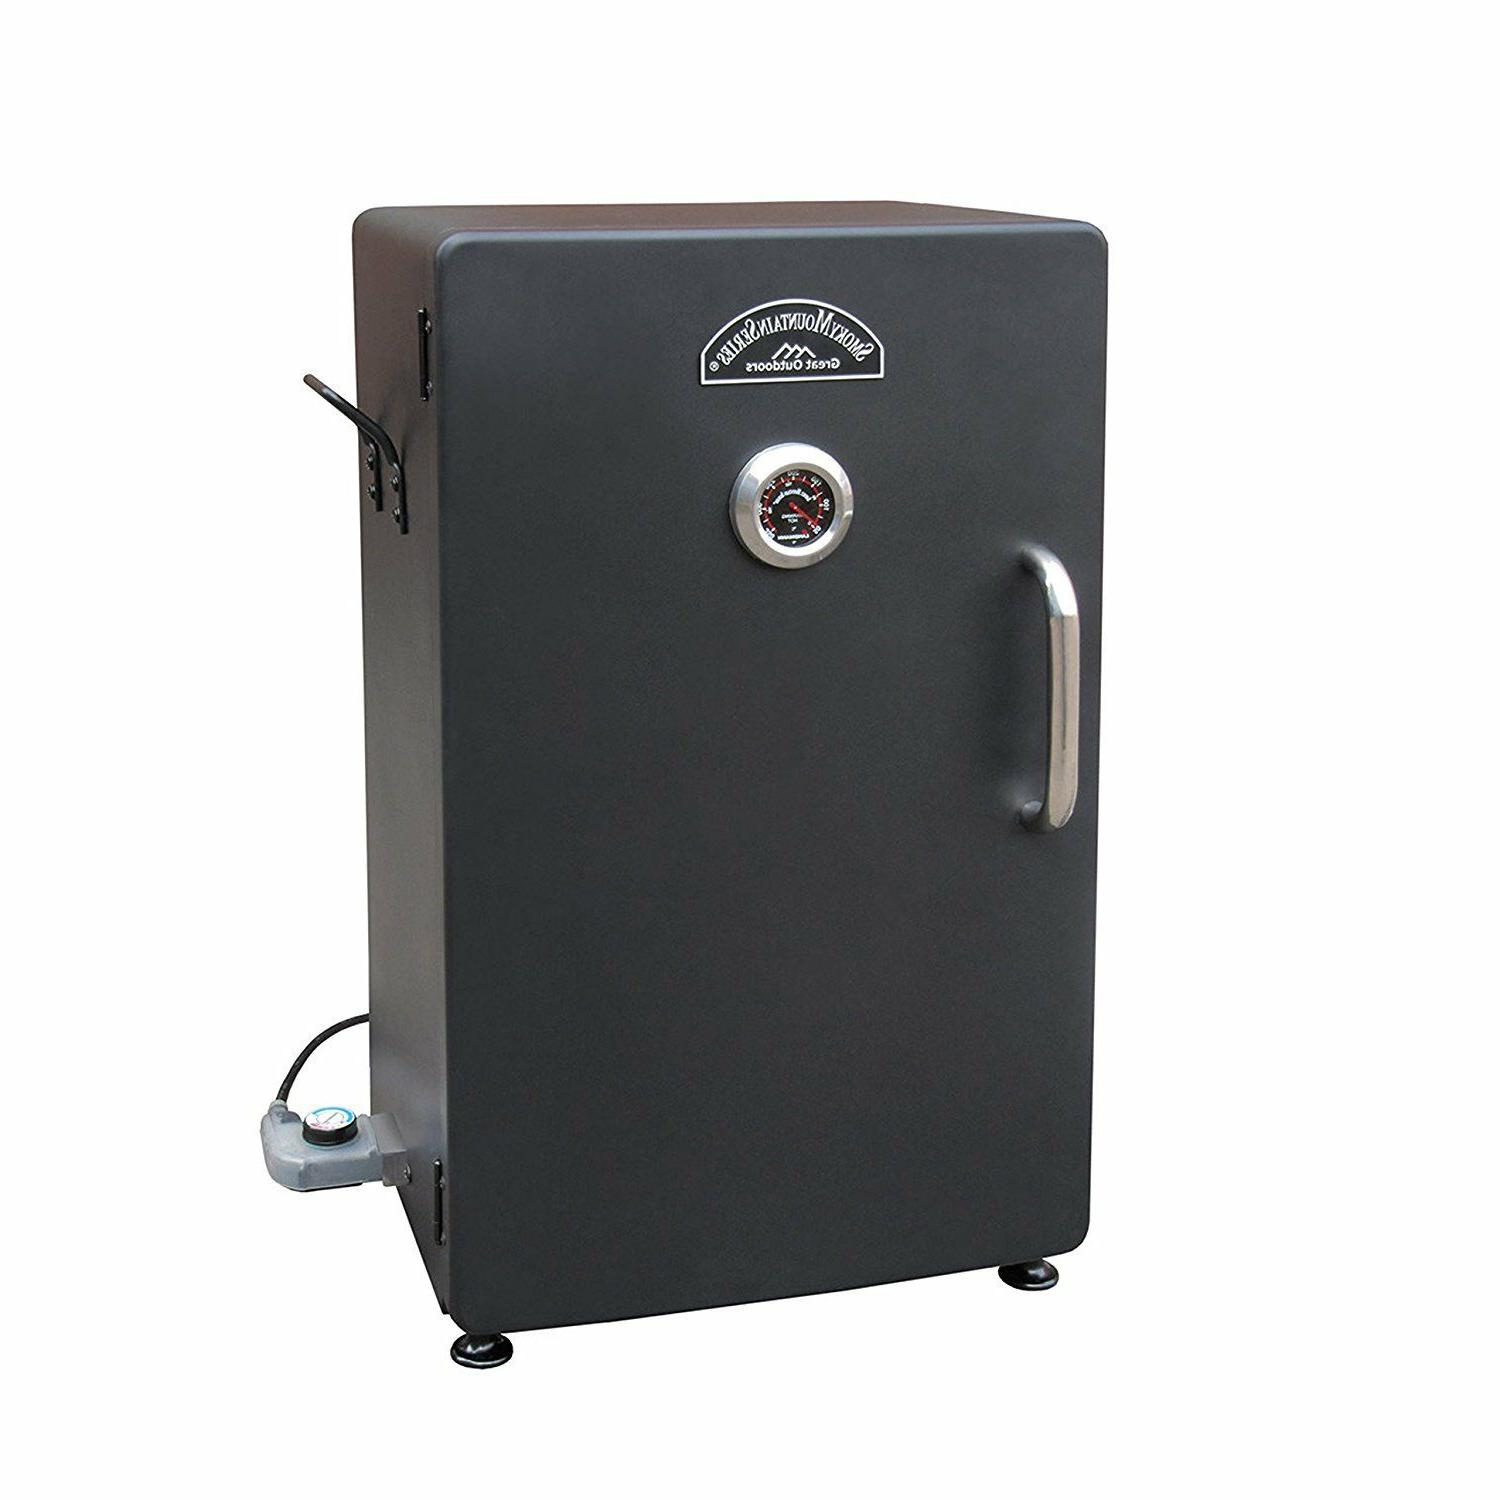 Electric Smoker Fish Food BBQ Grill Oven